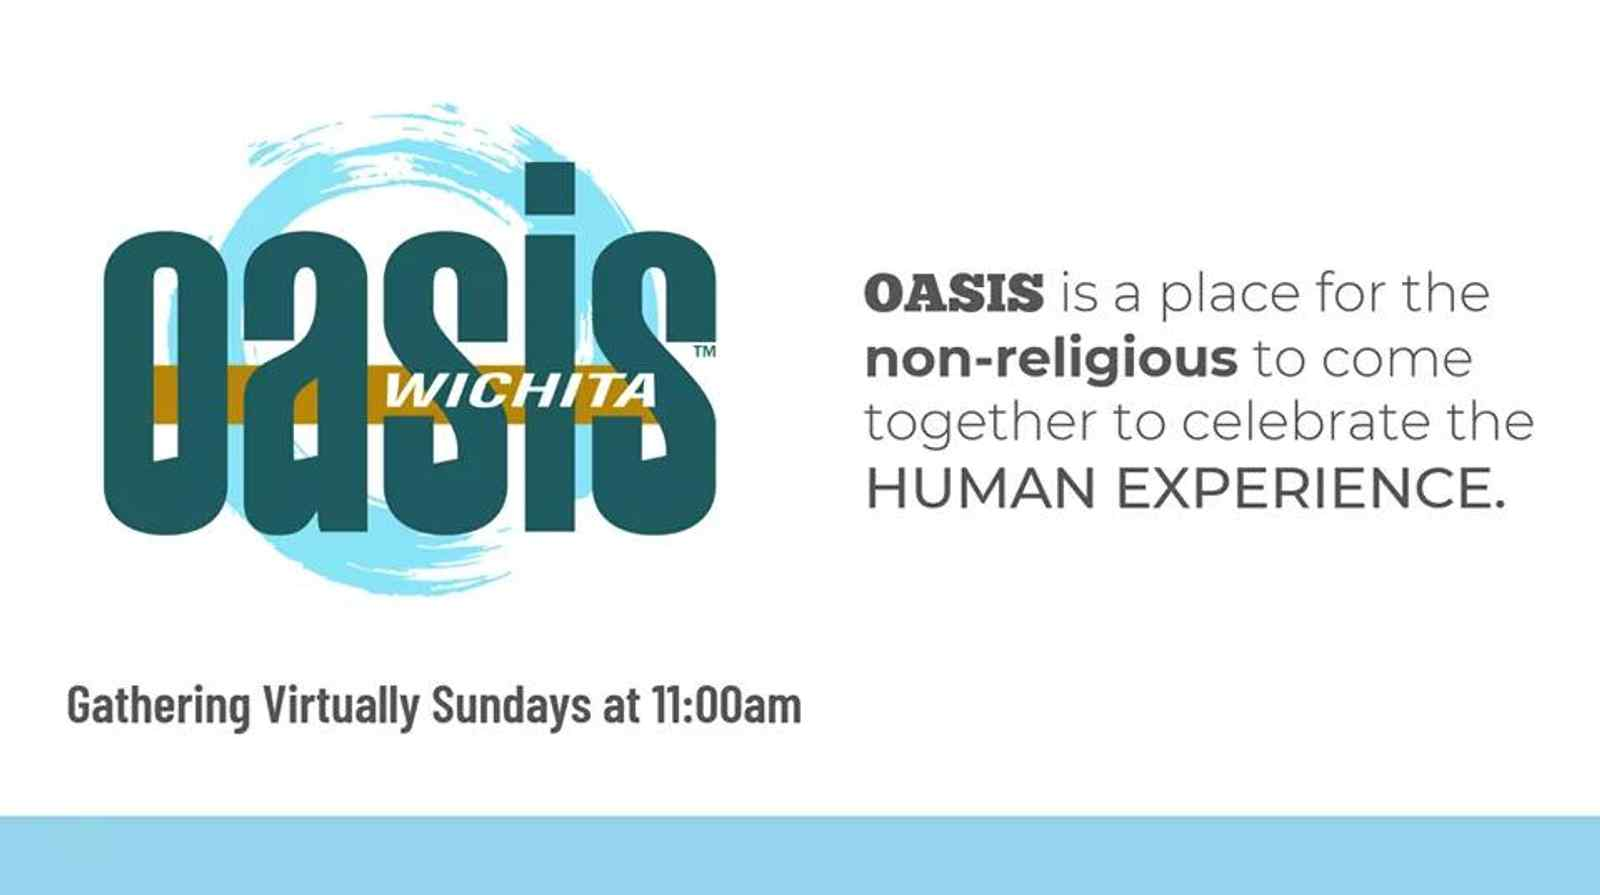 Wichita Oasis - Sunday Virtual Gathering